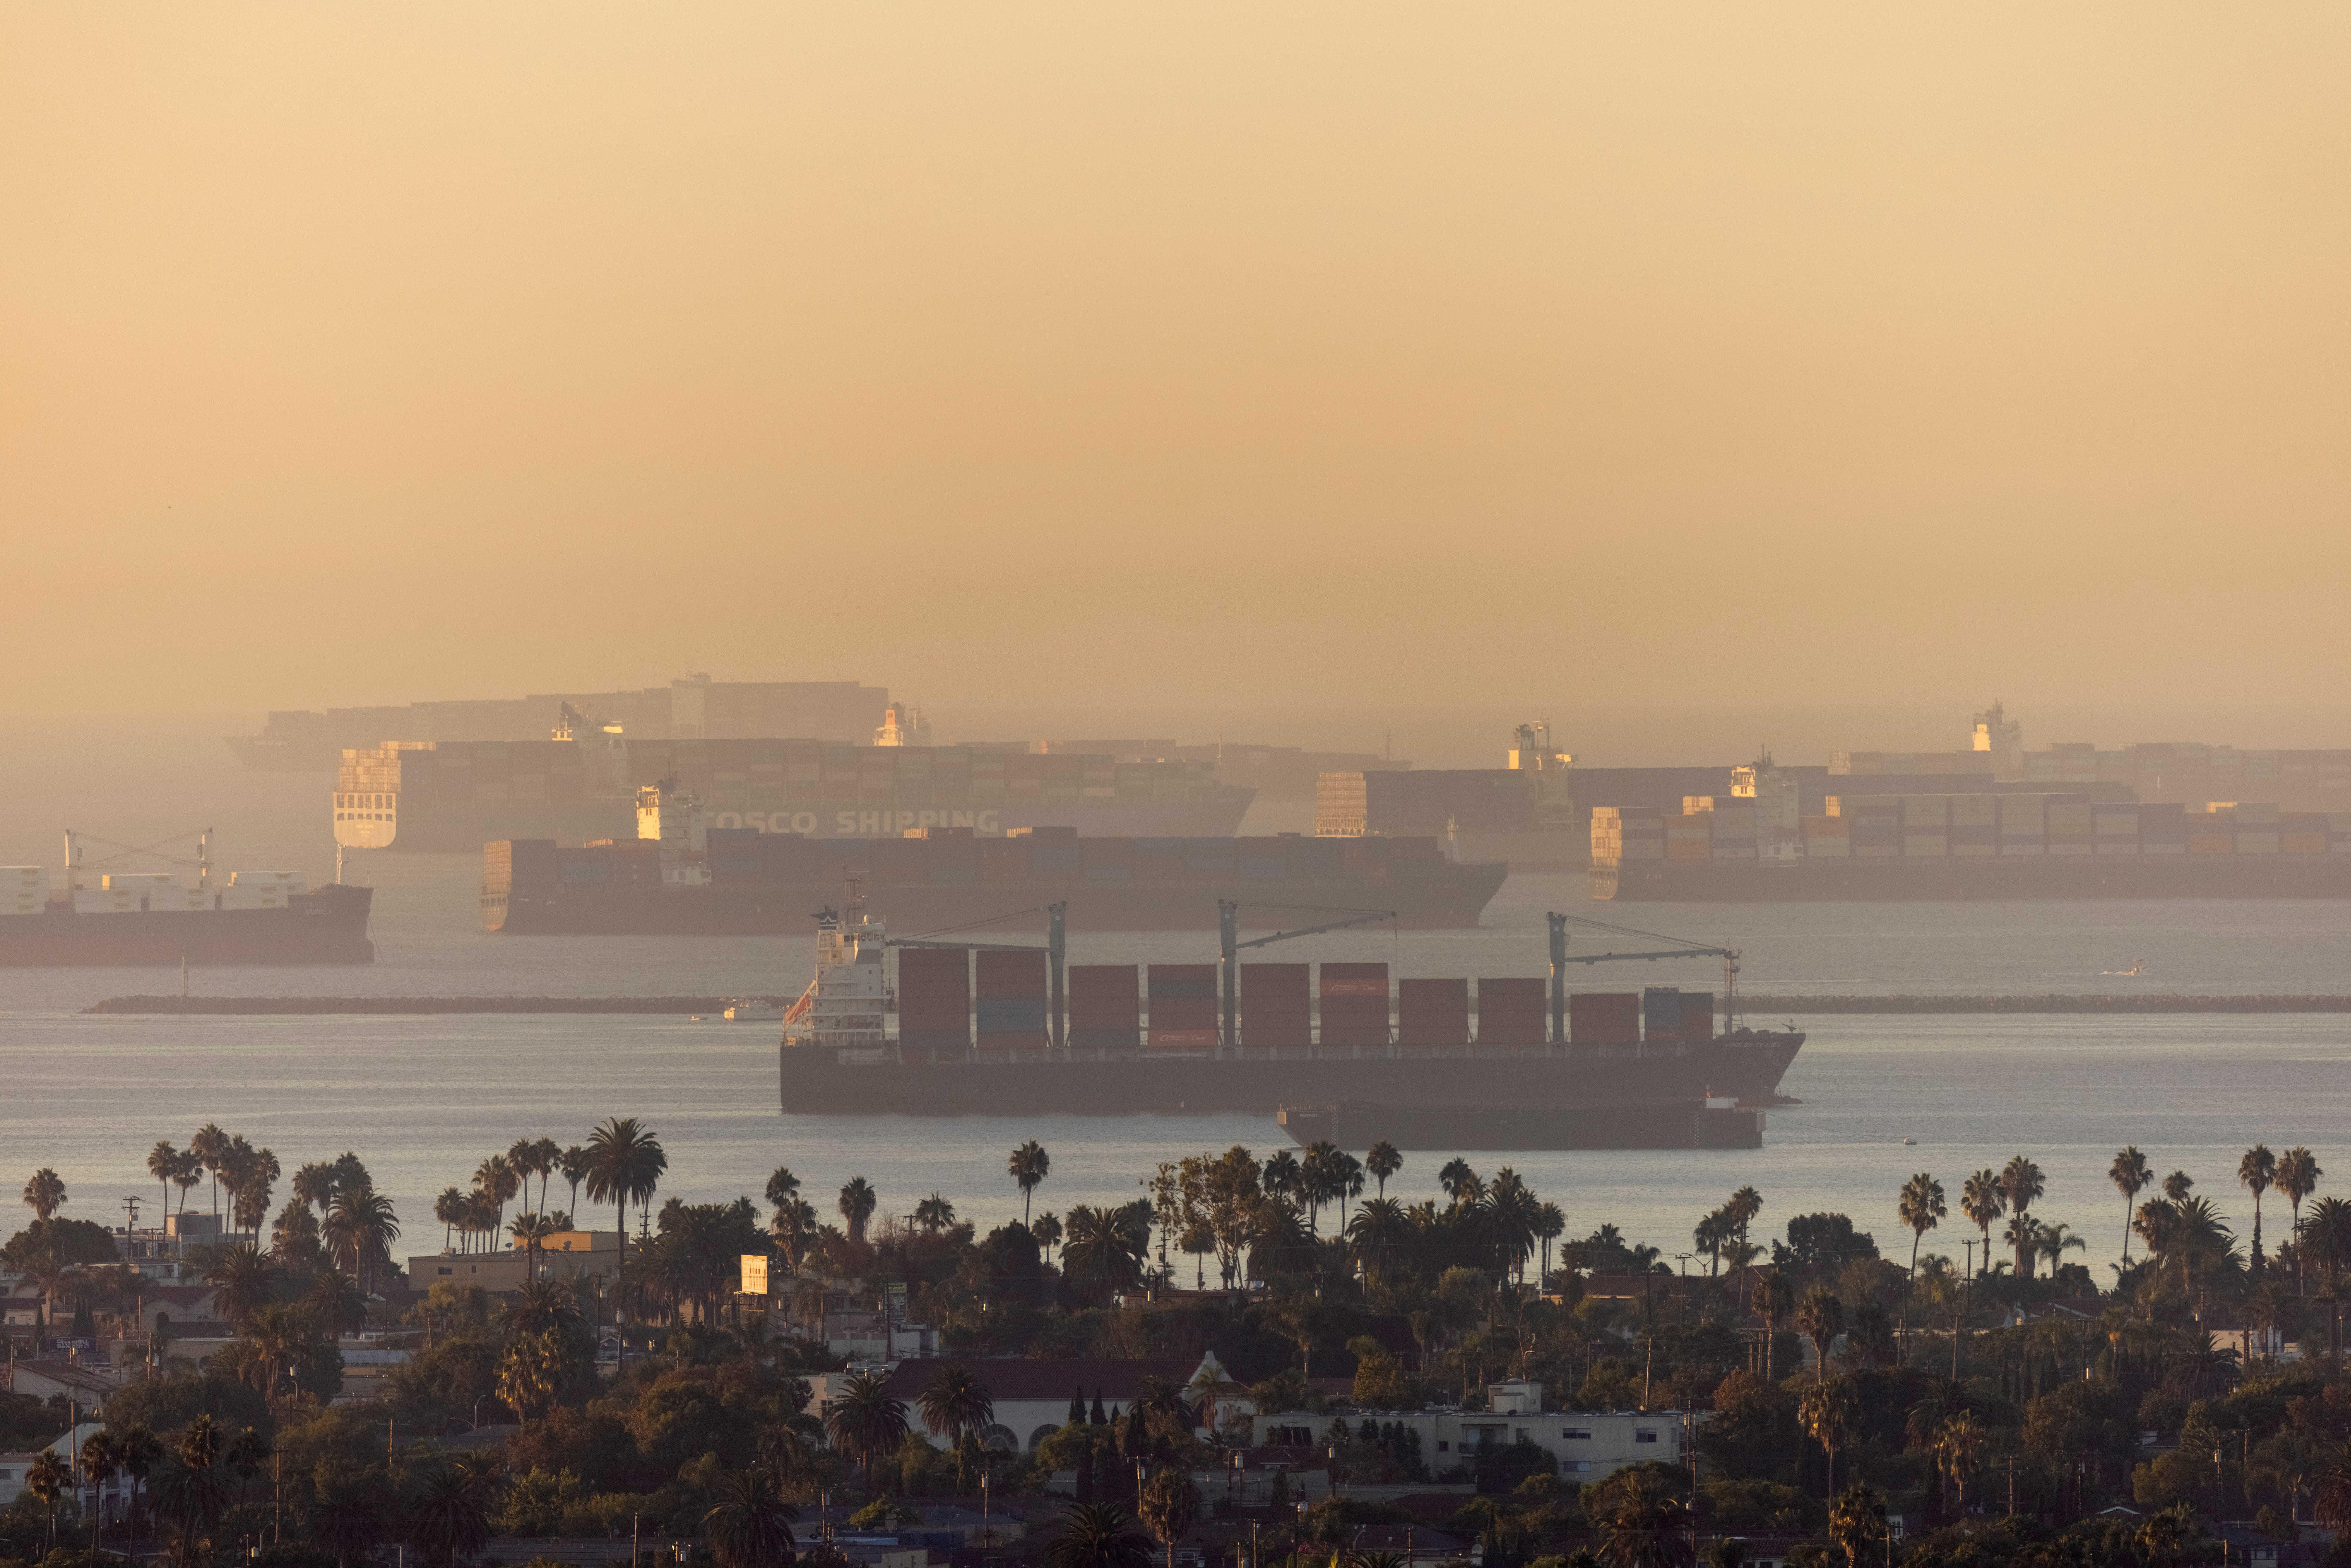 A record number of cargo container ships wait to unload due to the jammed ports of Los Angeles and Long Beach near Long Beach, California, U.S., September 22, 2021. REUTERS/Mike Blake